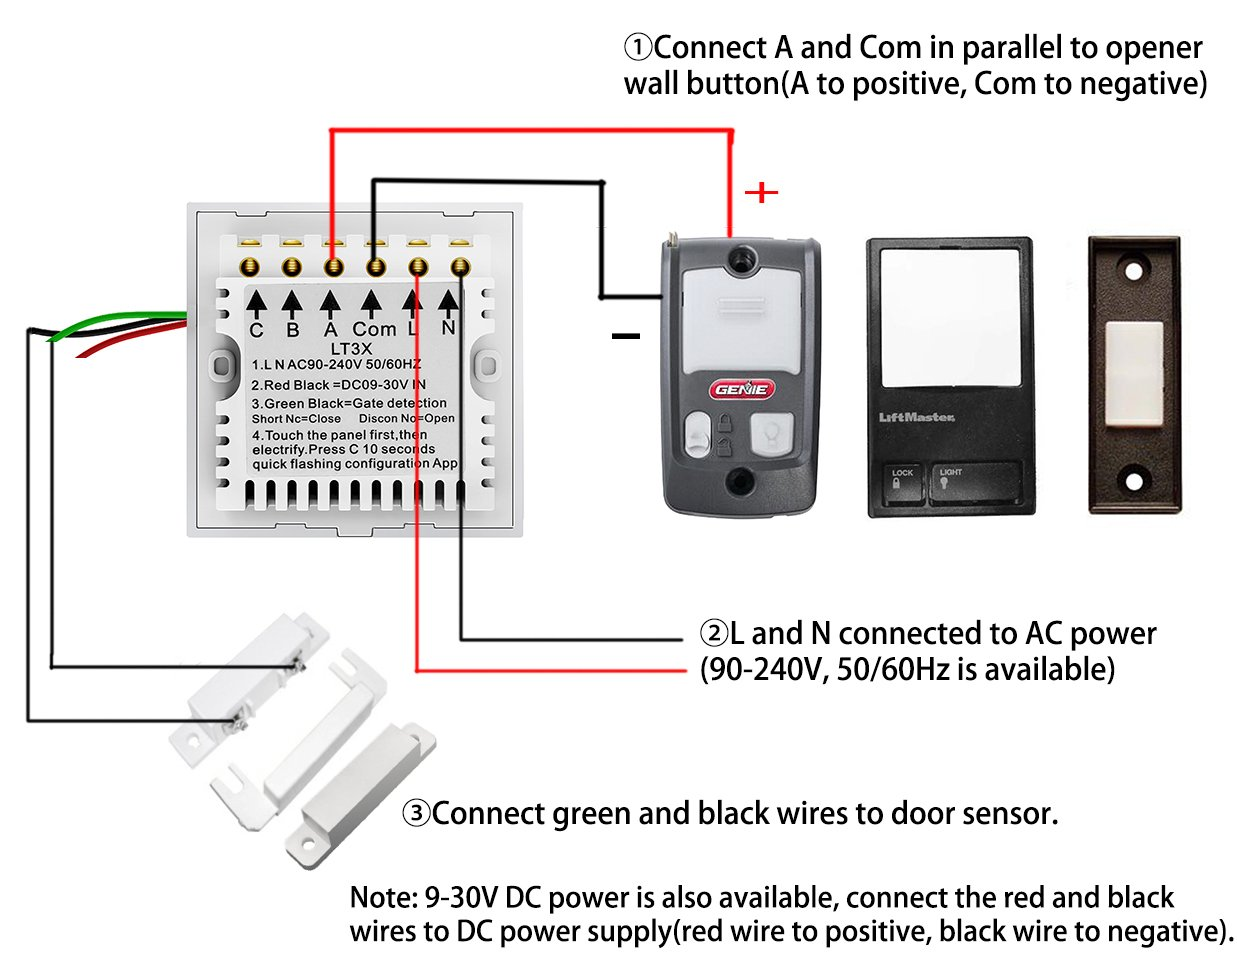 Wireless Garage Door Opener Remote WiFi Switch Universal Controlled by Smartphone for Automatic Gate Opener System(with Door Sensor) by Pearok (Image #3)